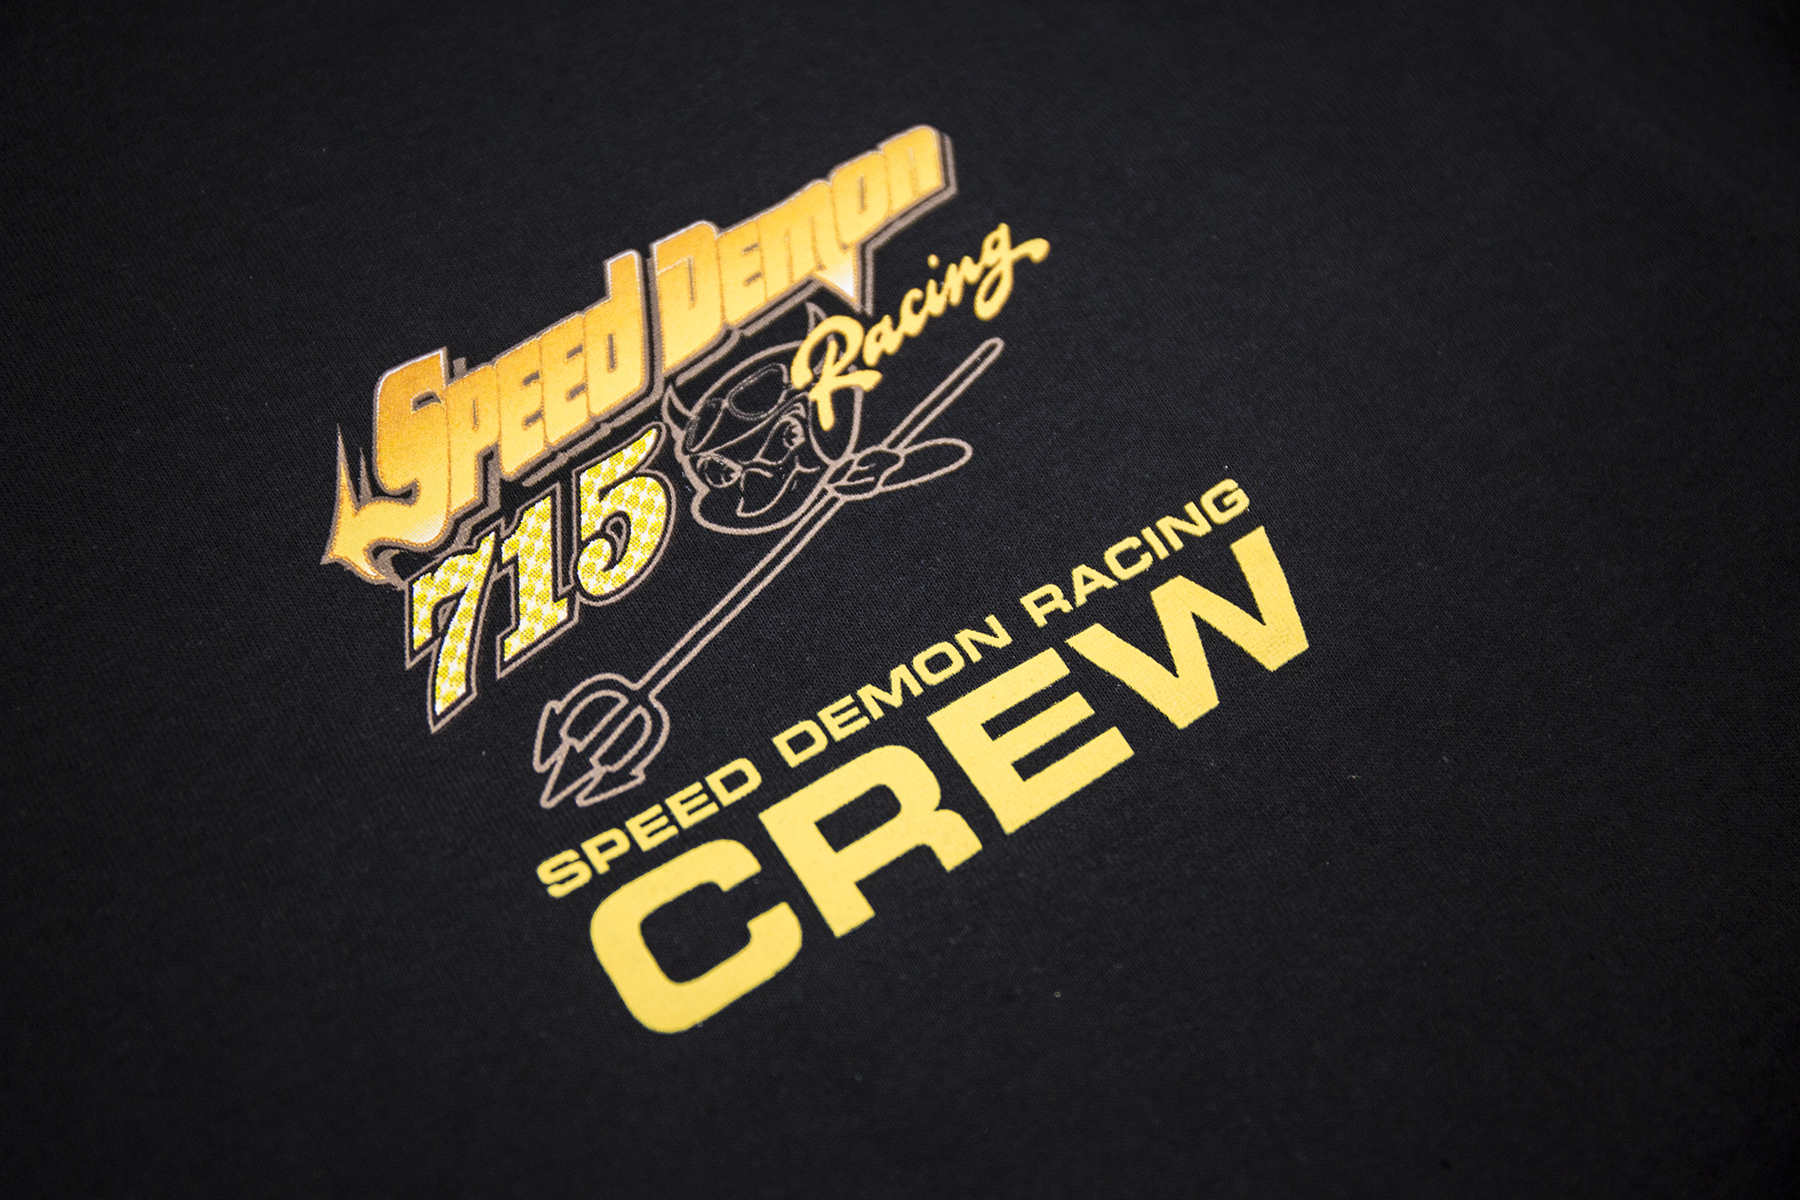 SPEEDDEMONCREW2